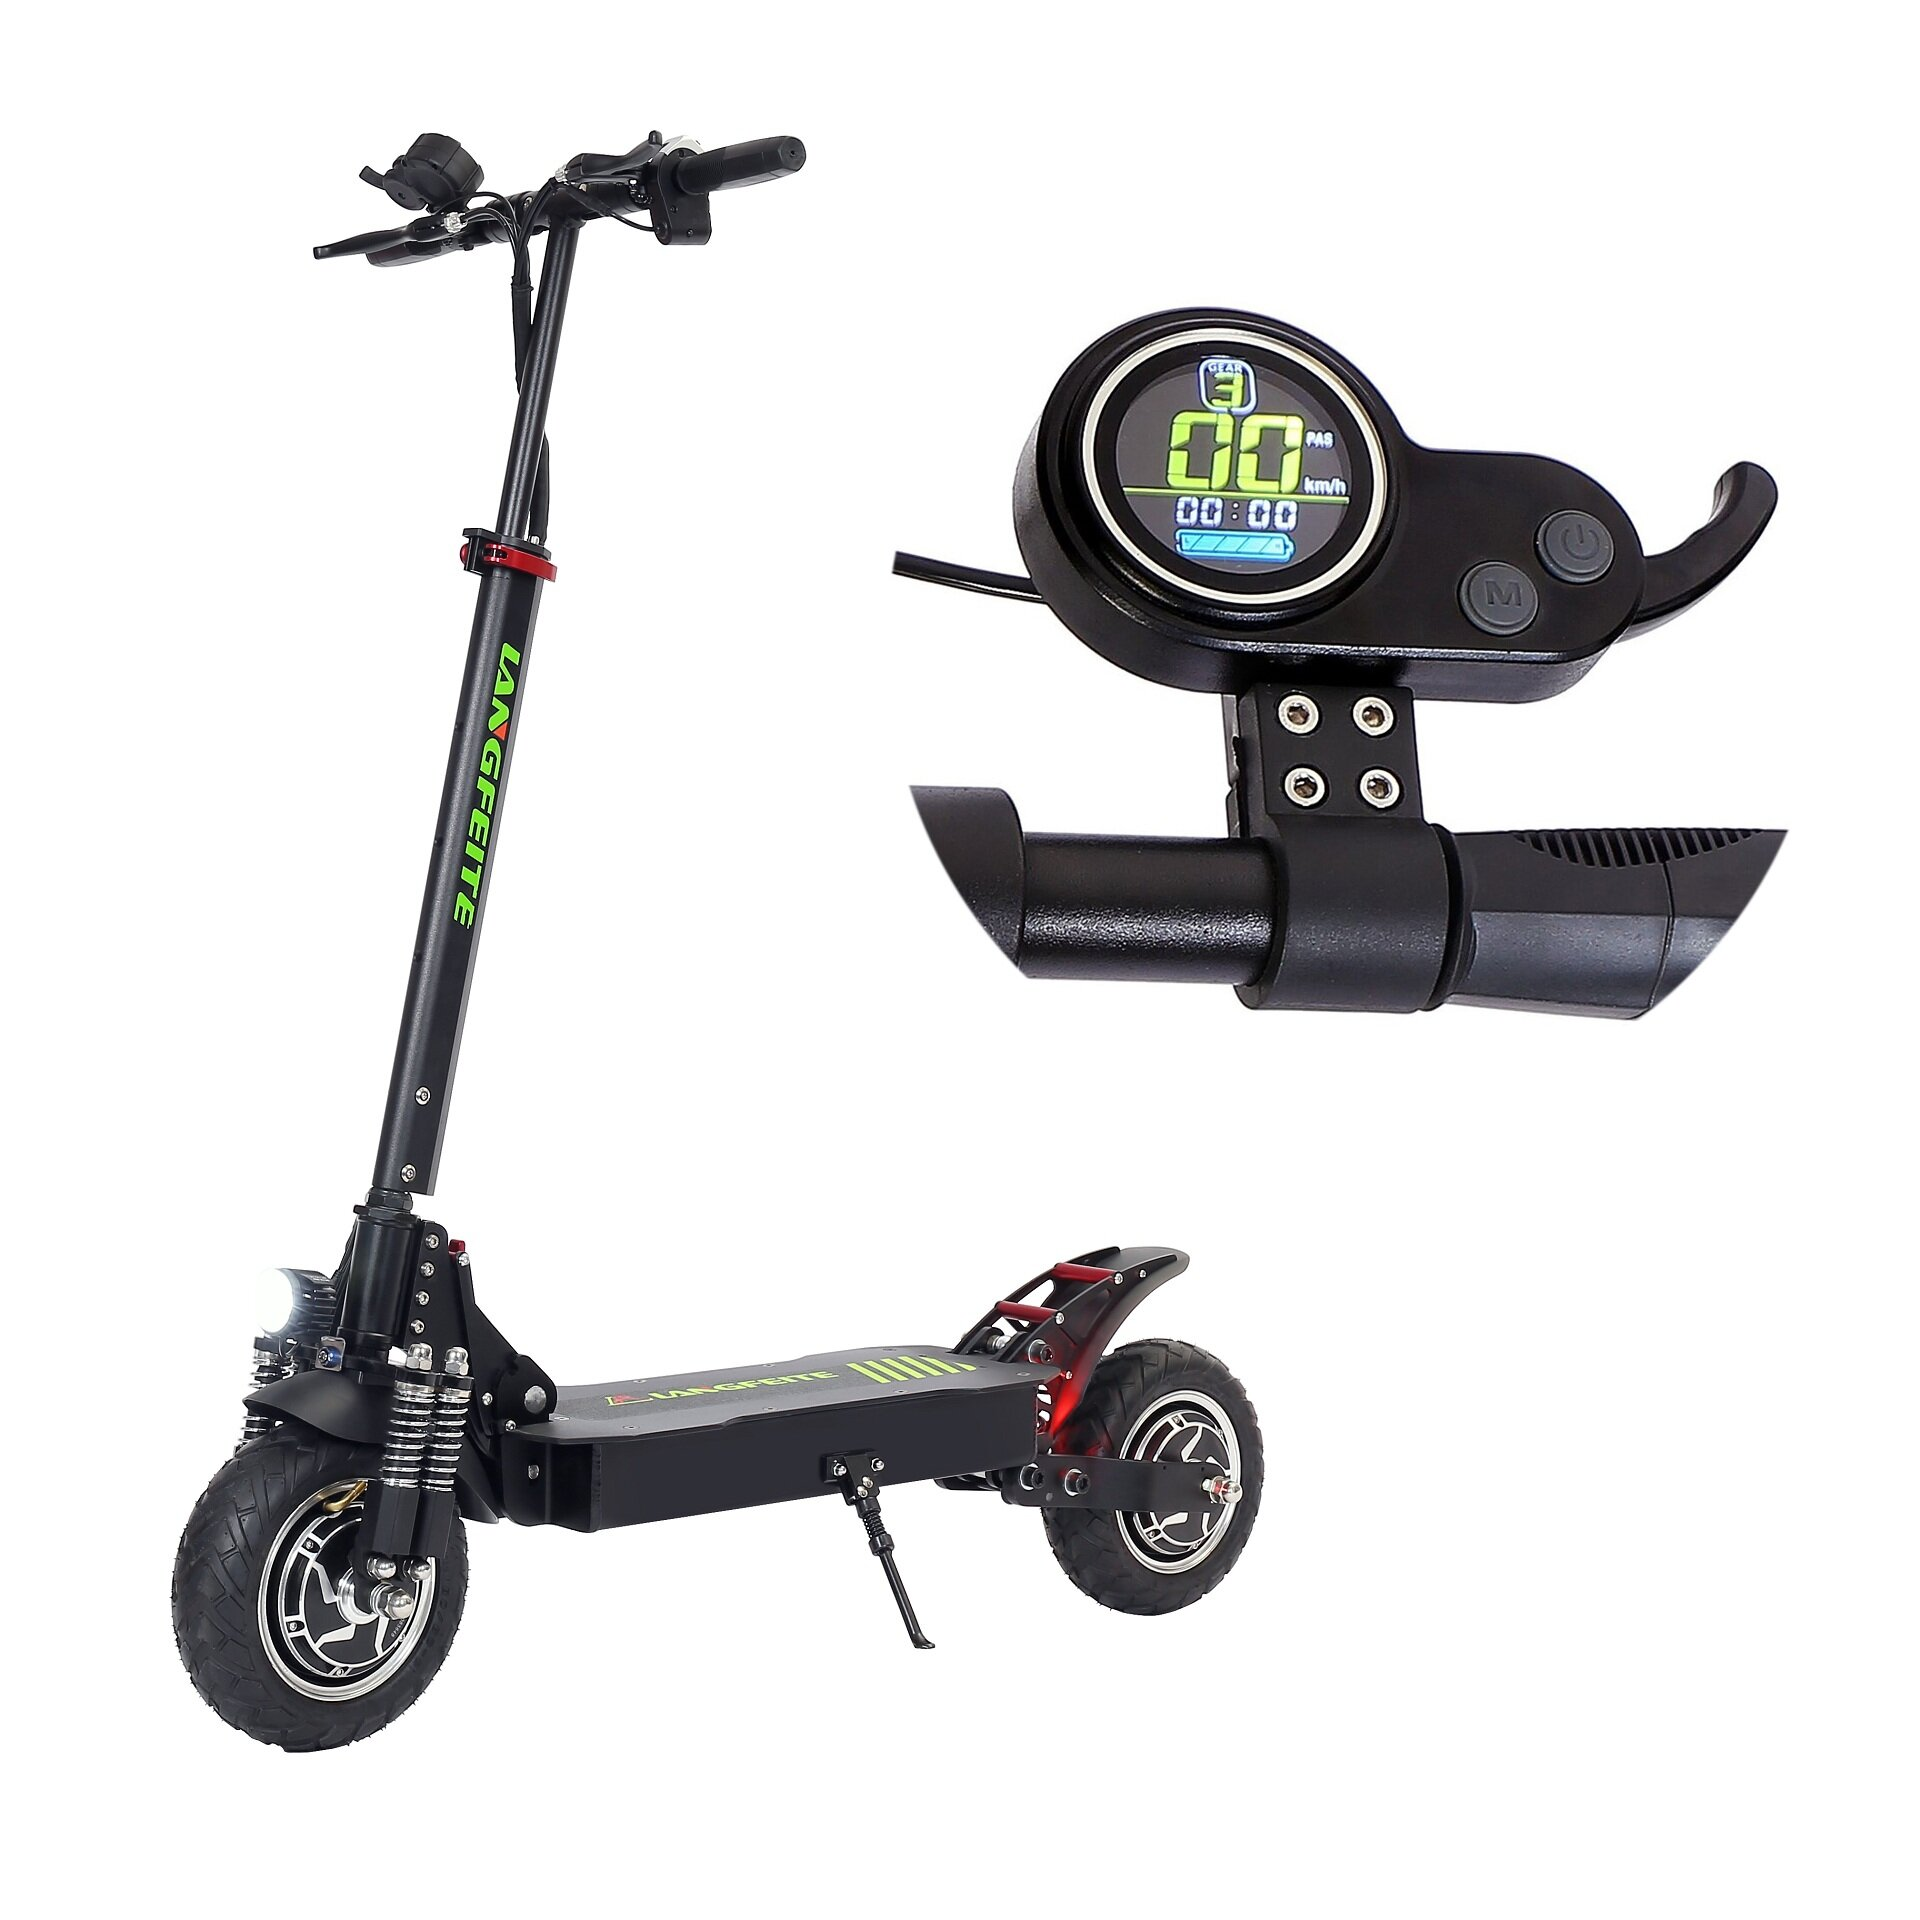 LANGFEITE L8S 2019 Version 15Ah 48.1V 800W*2 Dual Motor Folding Electric Scooter Color Display DC Brushless Motor 45km/h Top Speed 40km Range EU Plug